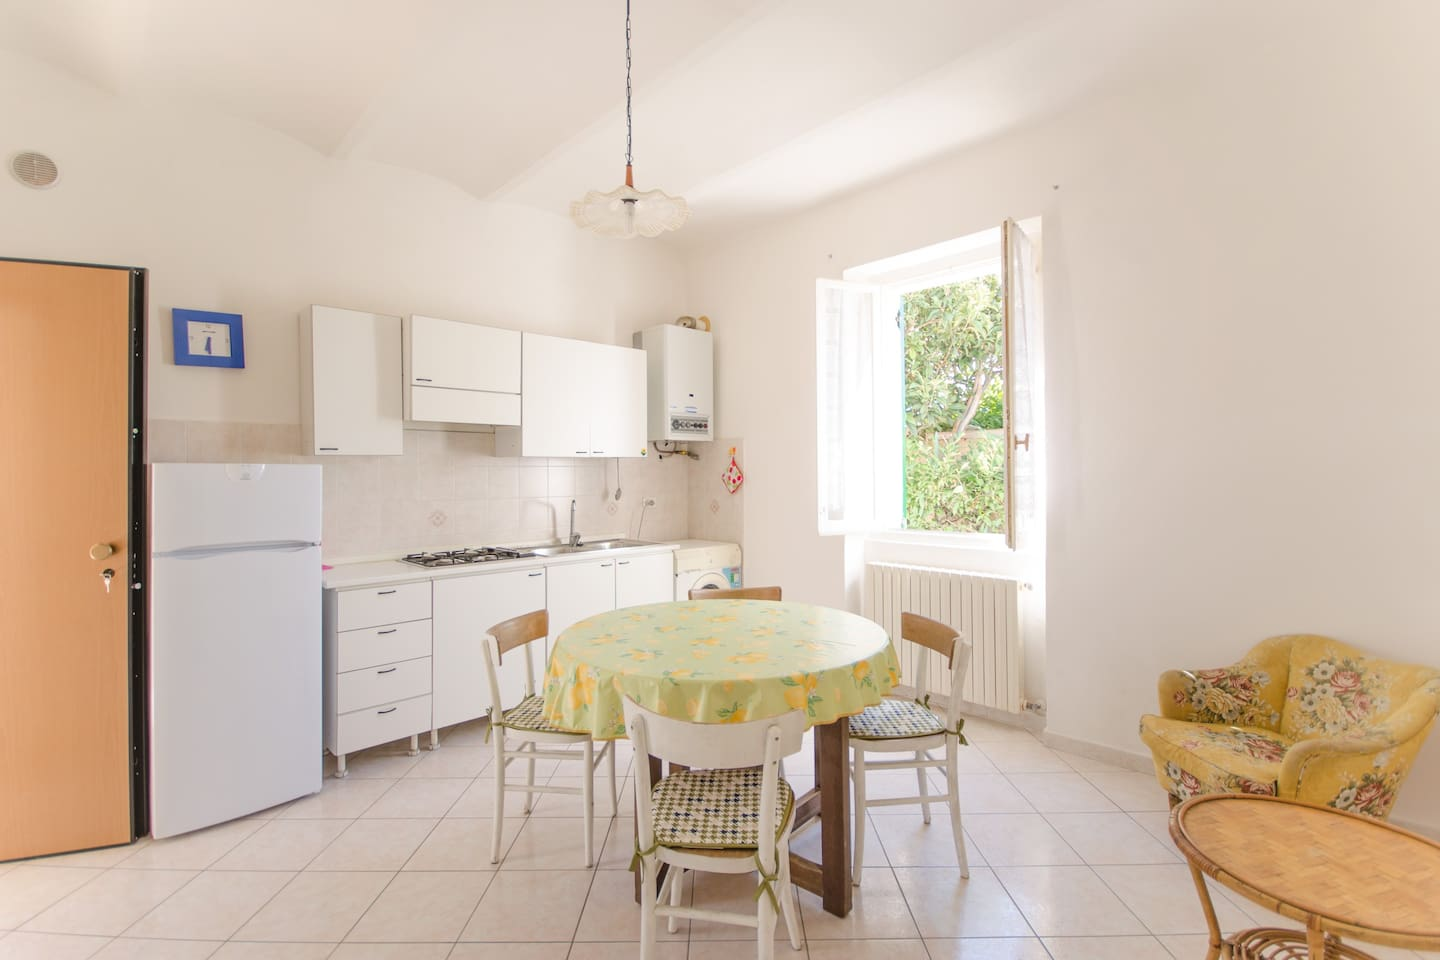 Vacanze al mare ad ORTONA Low Cost - Apartments for Rent in Ortona ...